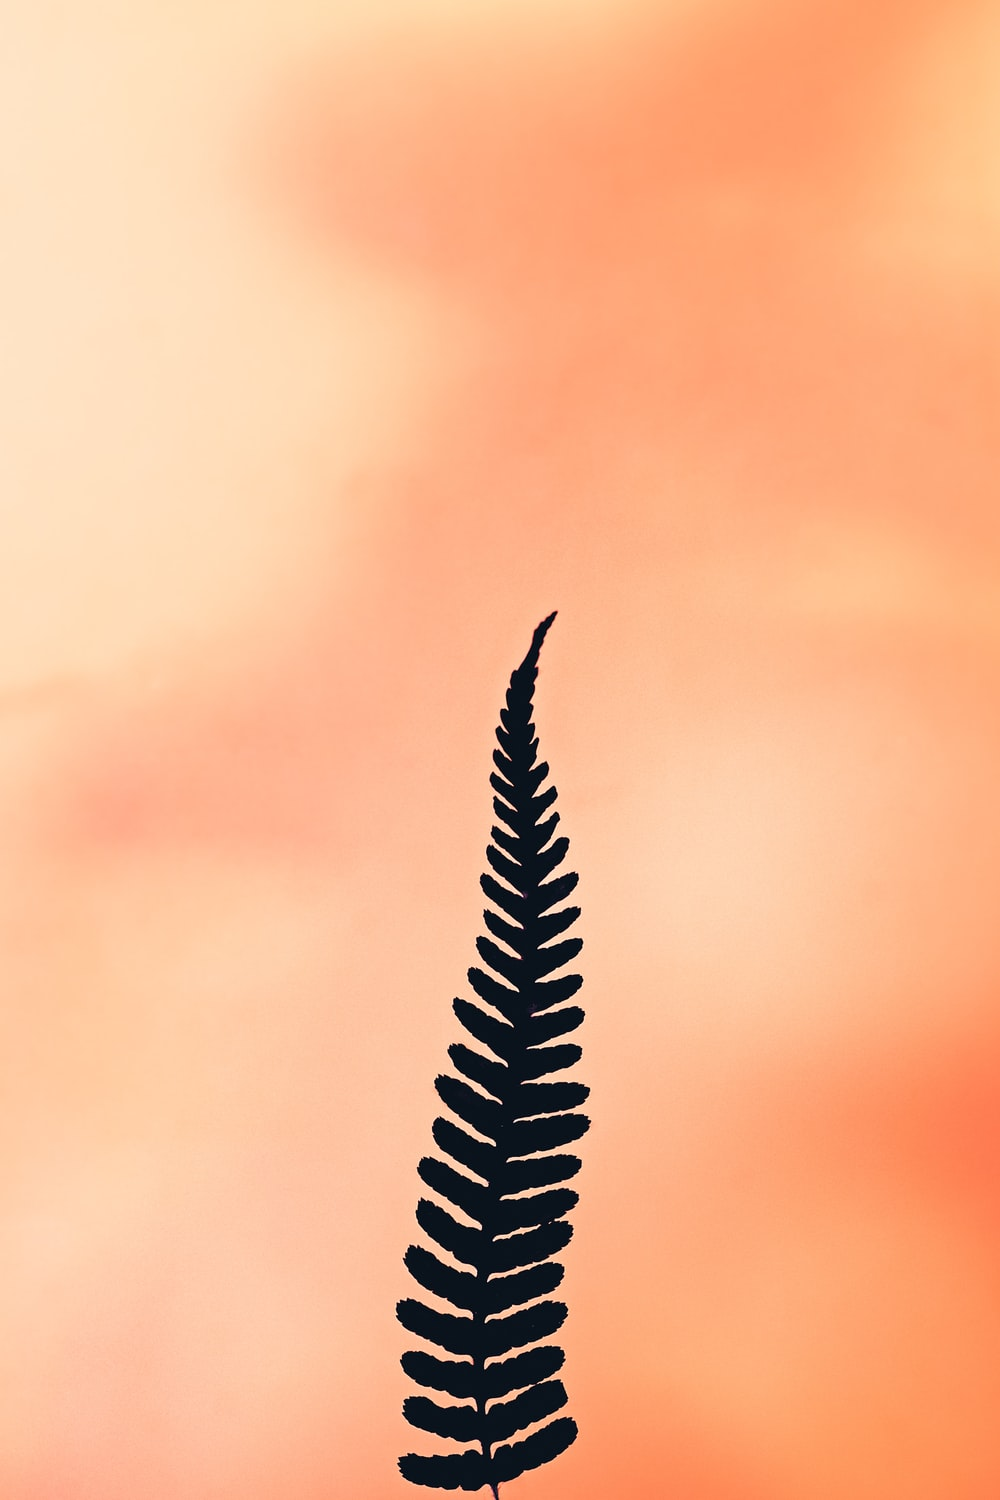 black and white feather in close up photography